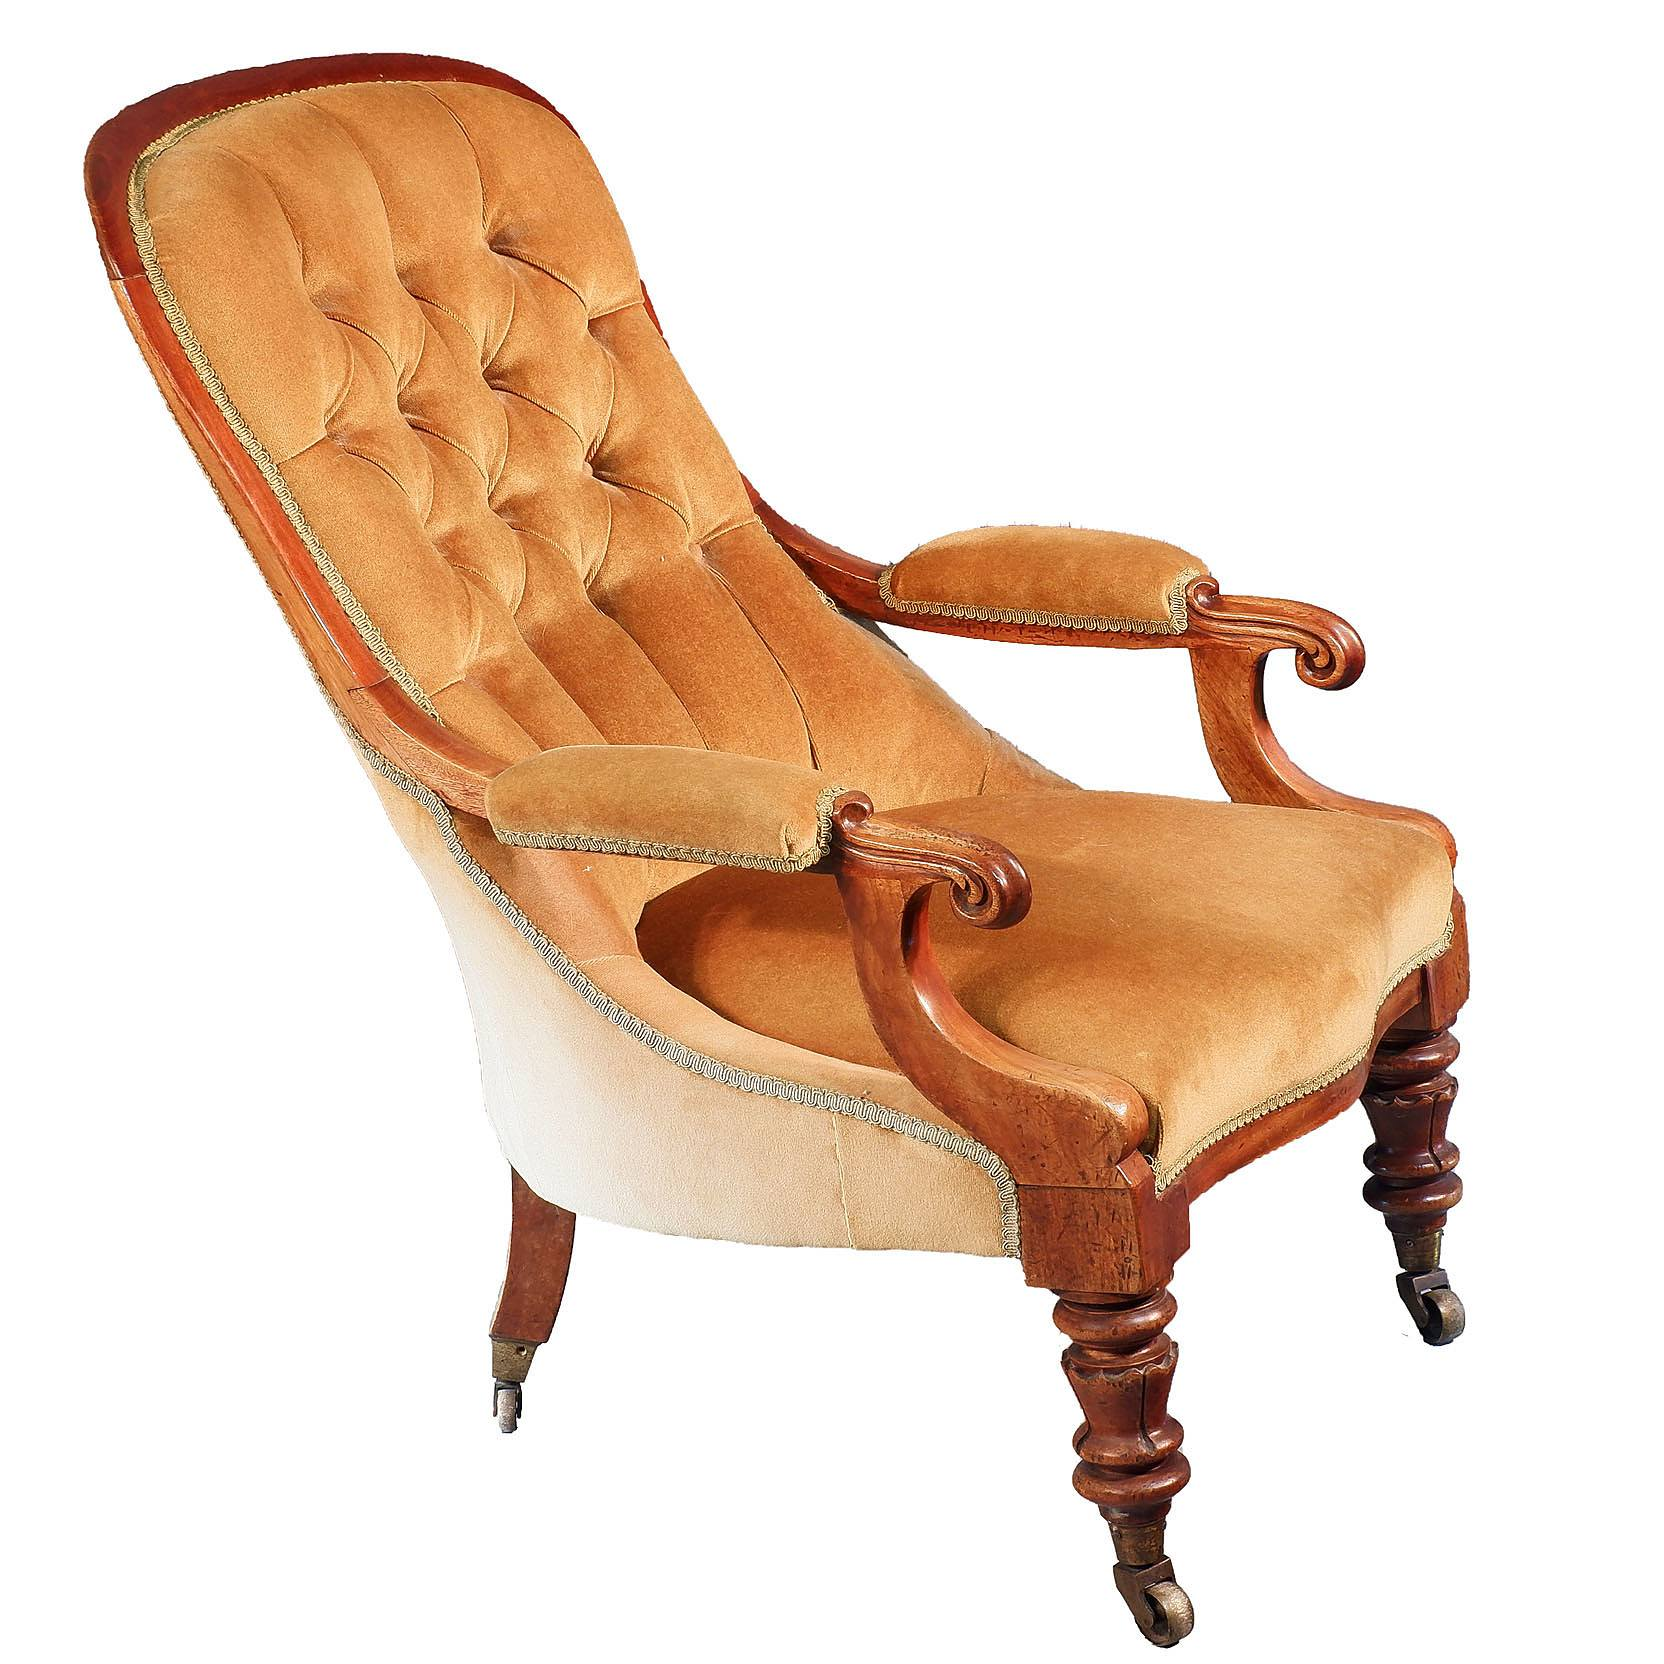 'Early Victorian Mahogany Salon Chair Circa 1850'